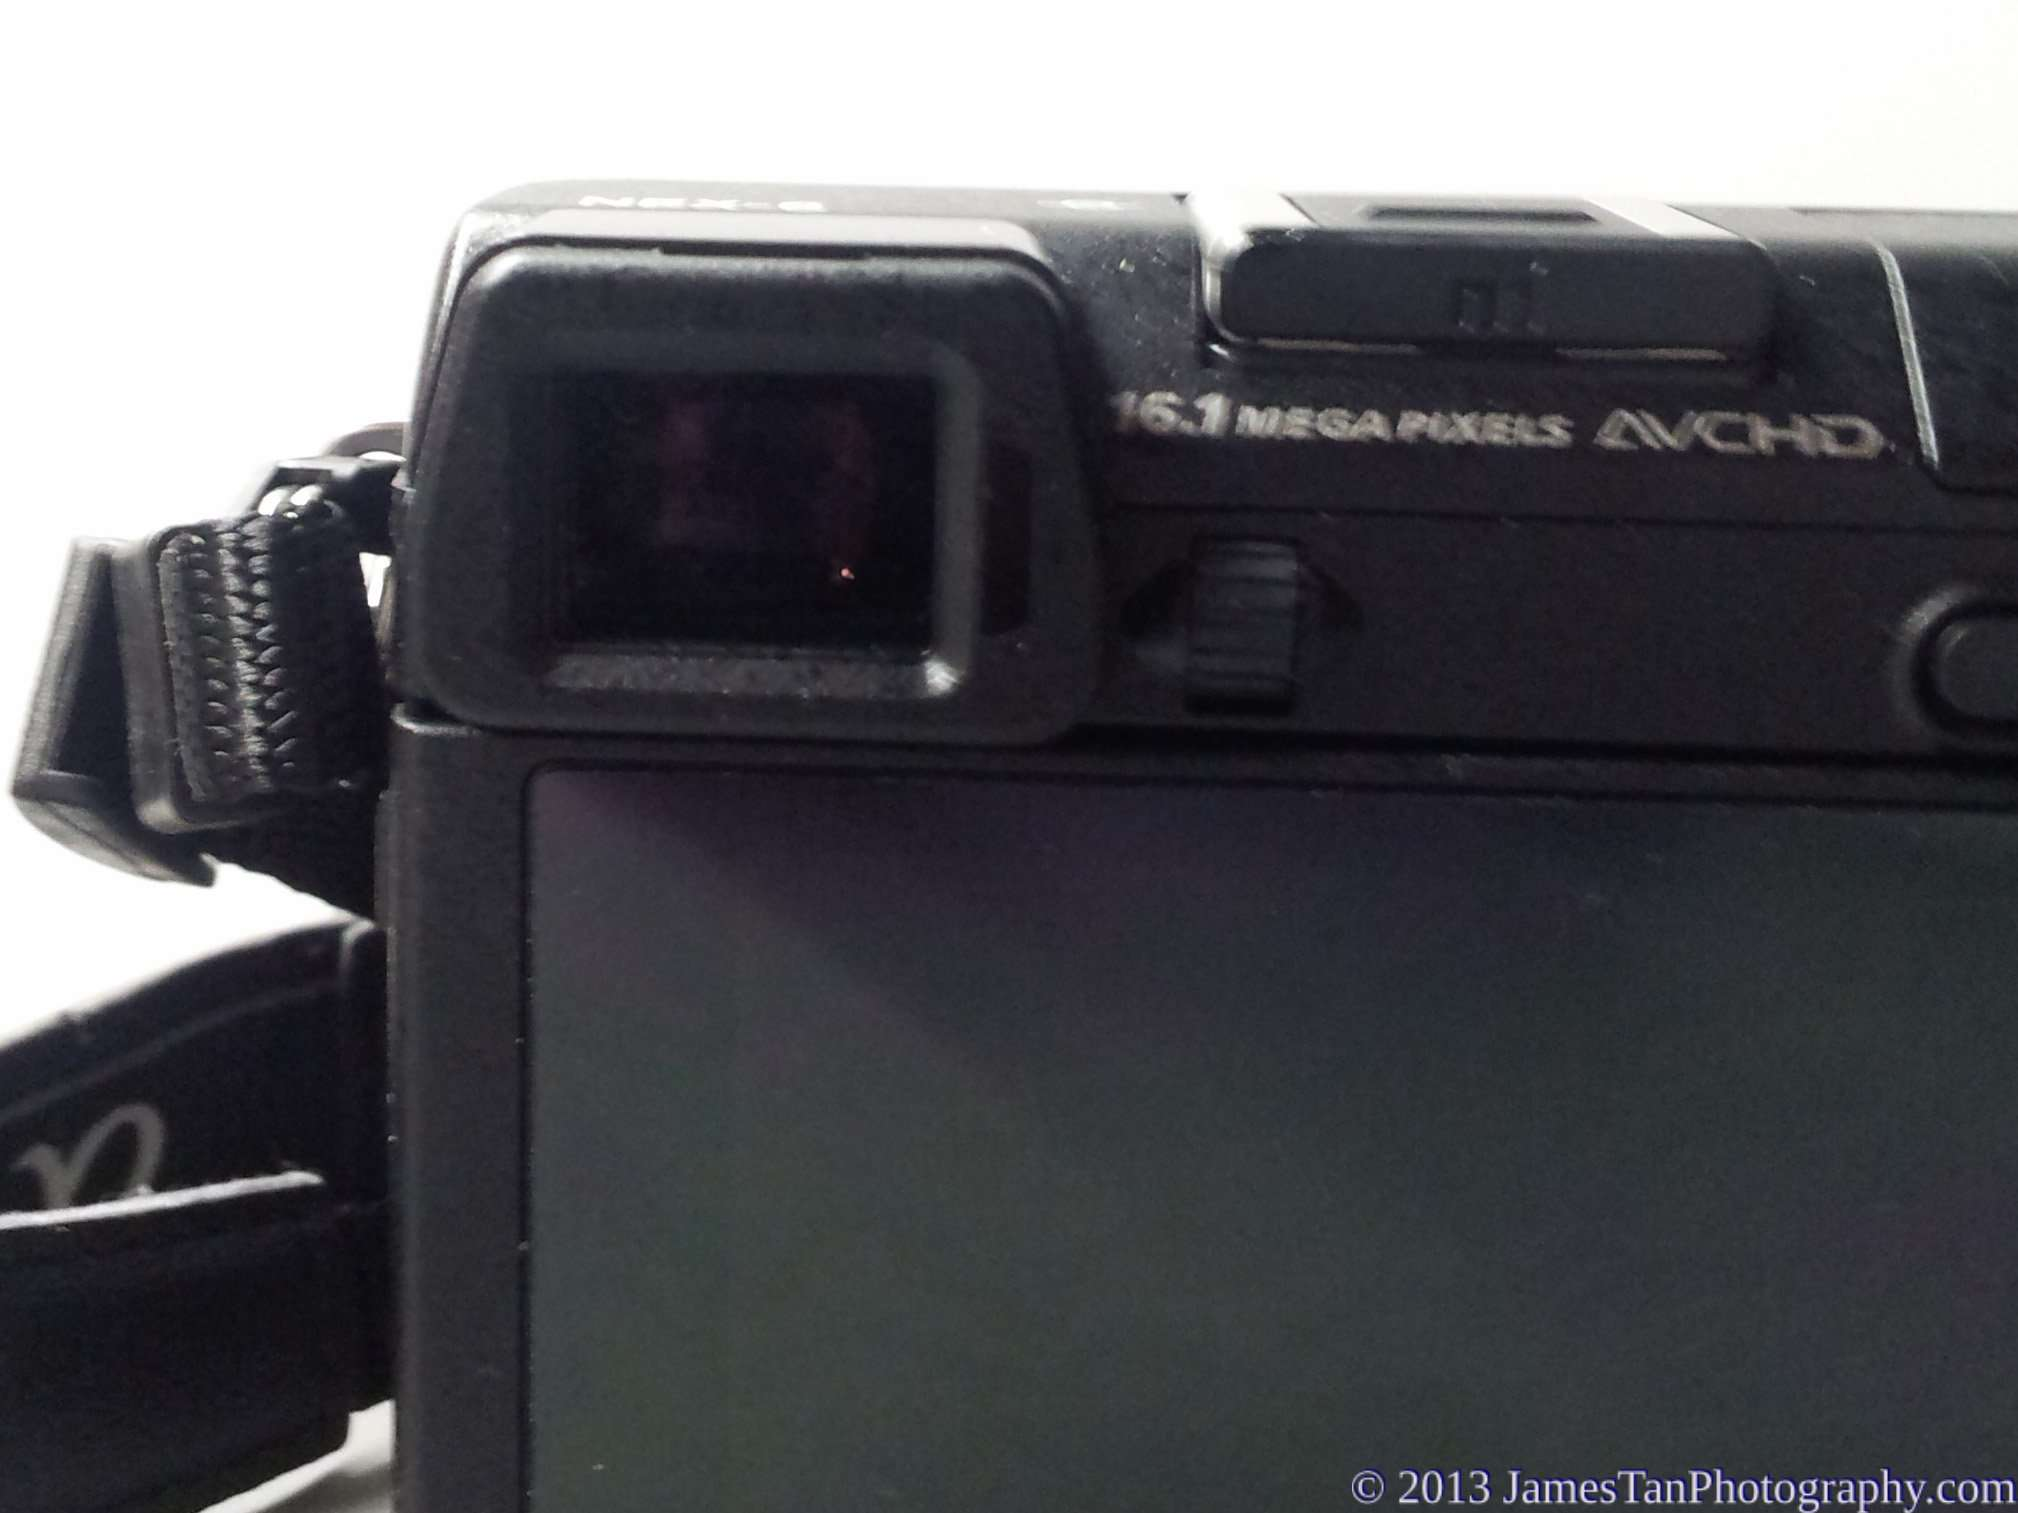 Sony Alpha NEX-6 EVF without rubber eye cup